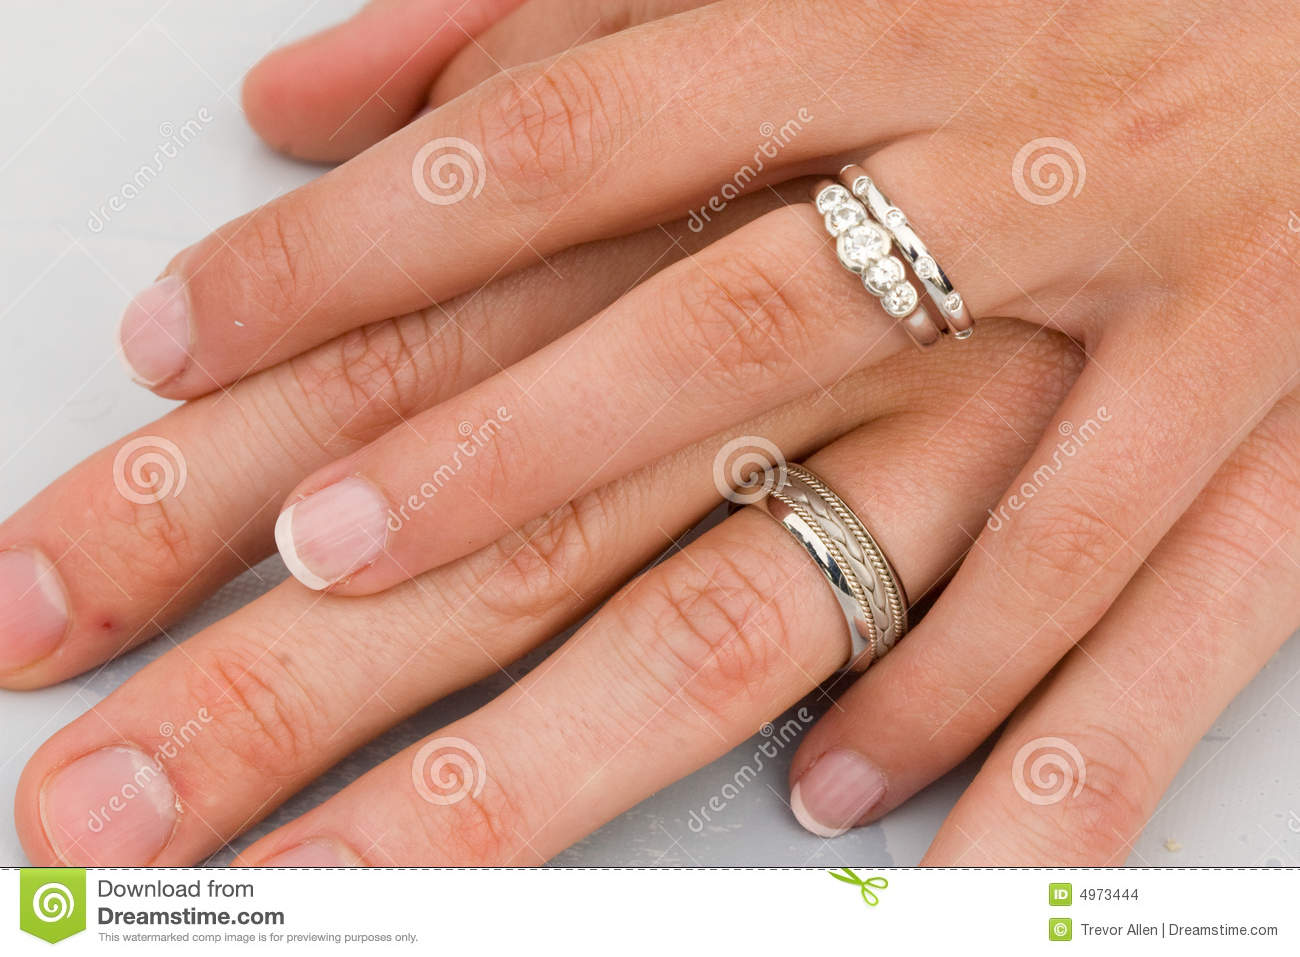 two hands wedding rings wedding rings pictures Wedding Rings on hands Stock Images